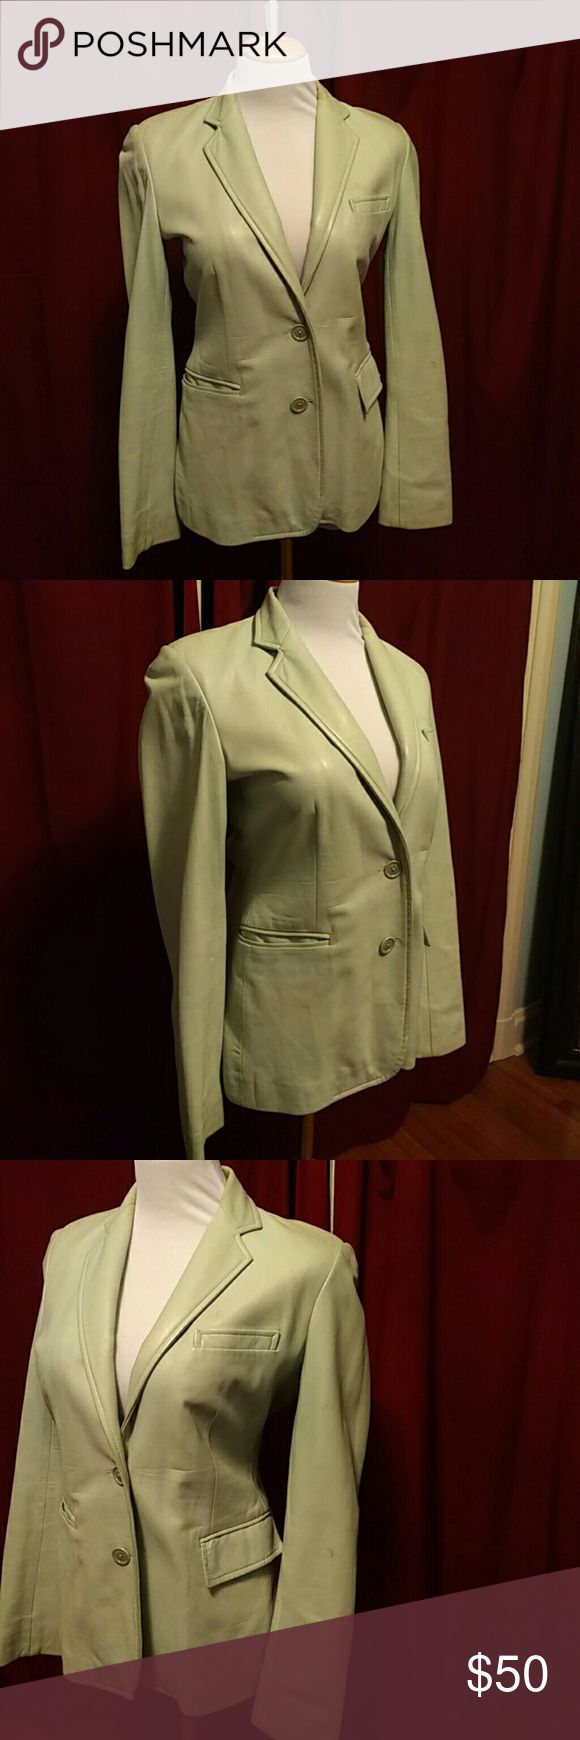 Leather Jacket Absolutely beautiful soft light blue leather jacket.   Such a staple piece.  I ?? this jacket.  It has seen a few parties and needs a good dry cleaning (price reflects dry cleaning).  I may trade but am really not willing to go lower on price. Ralph Lauren Jackets & Coats Blazers